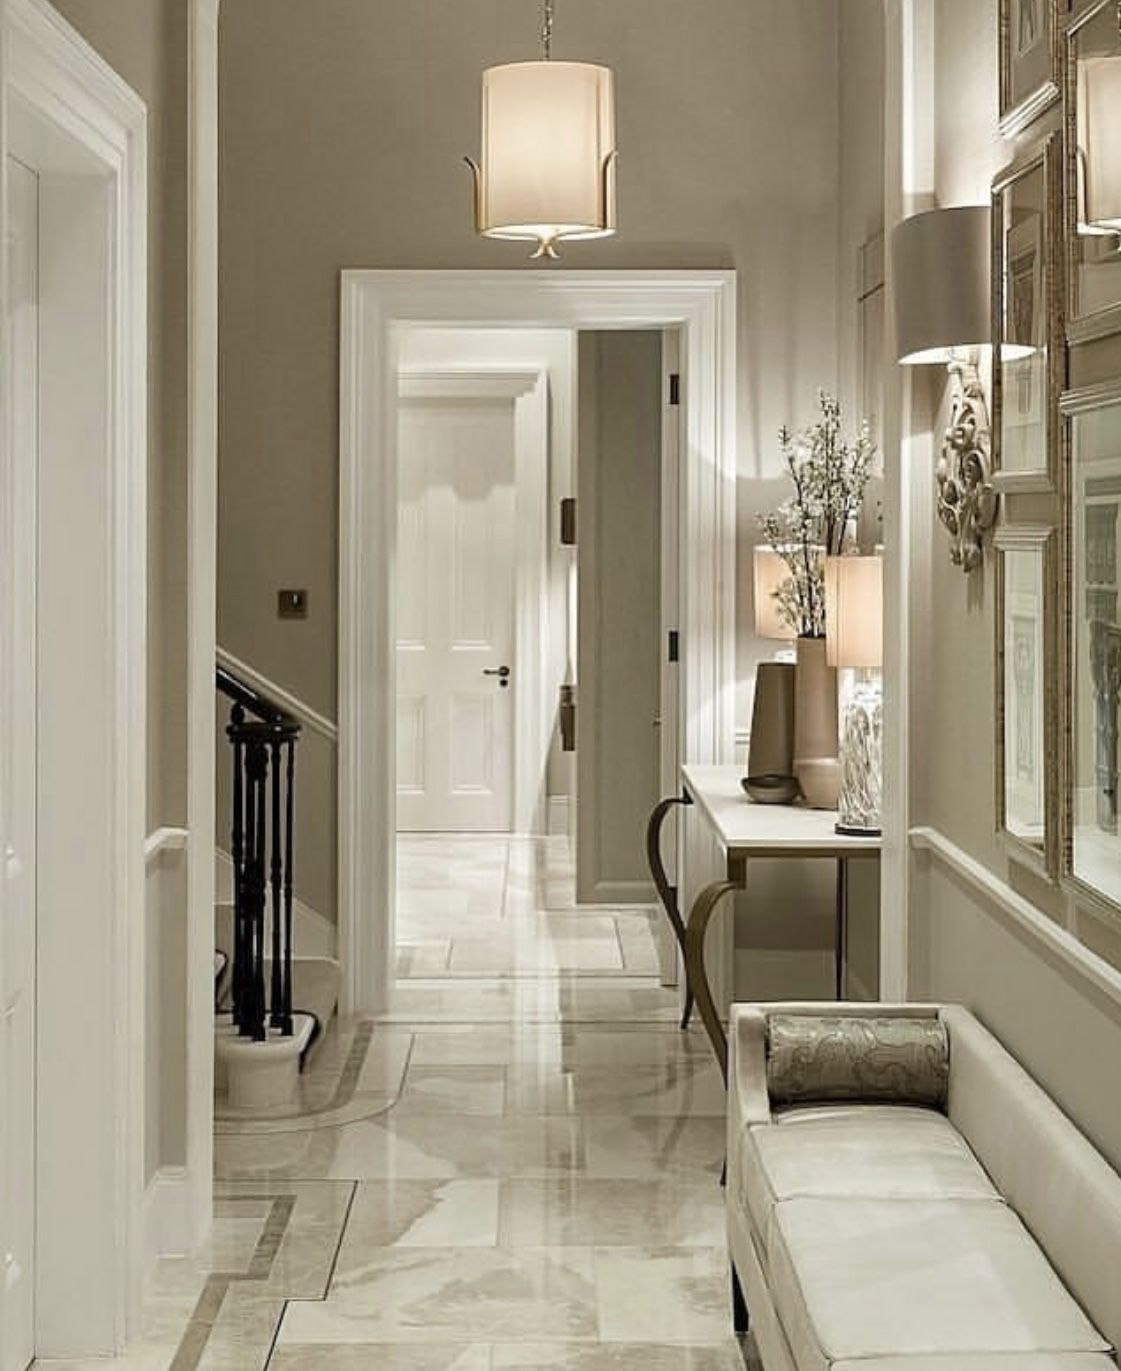 Home Interior Design Ideas Hall: Pin By Ⓓⓐⓢⓘⓐ Ⓐⓡⓜⓞⓝⓘ On House Decor